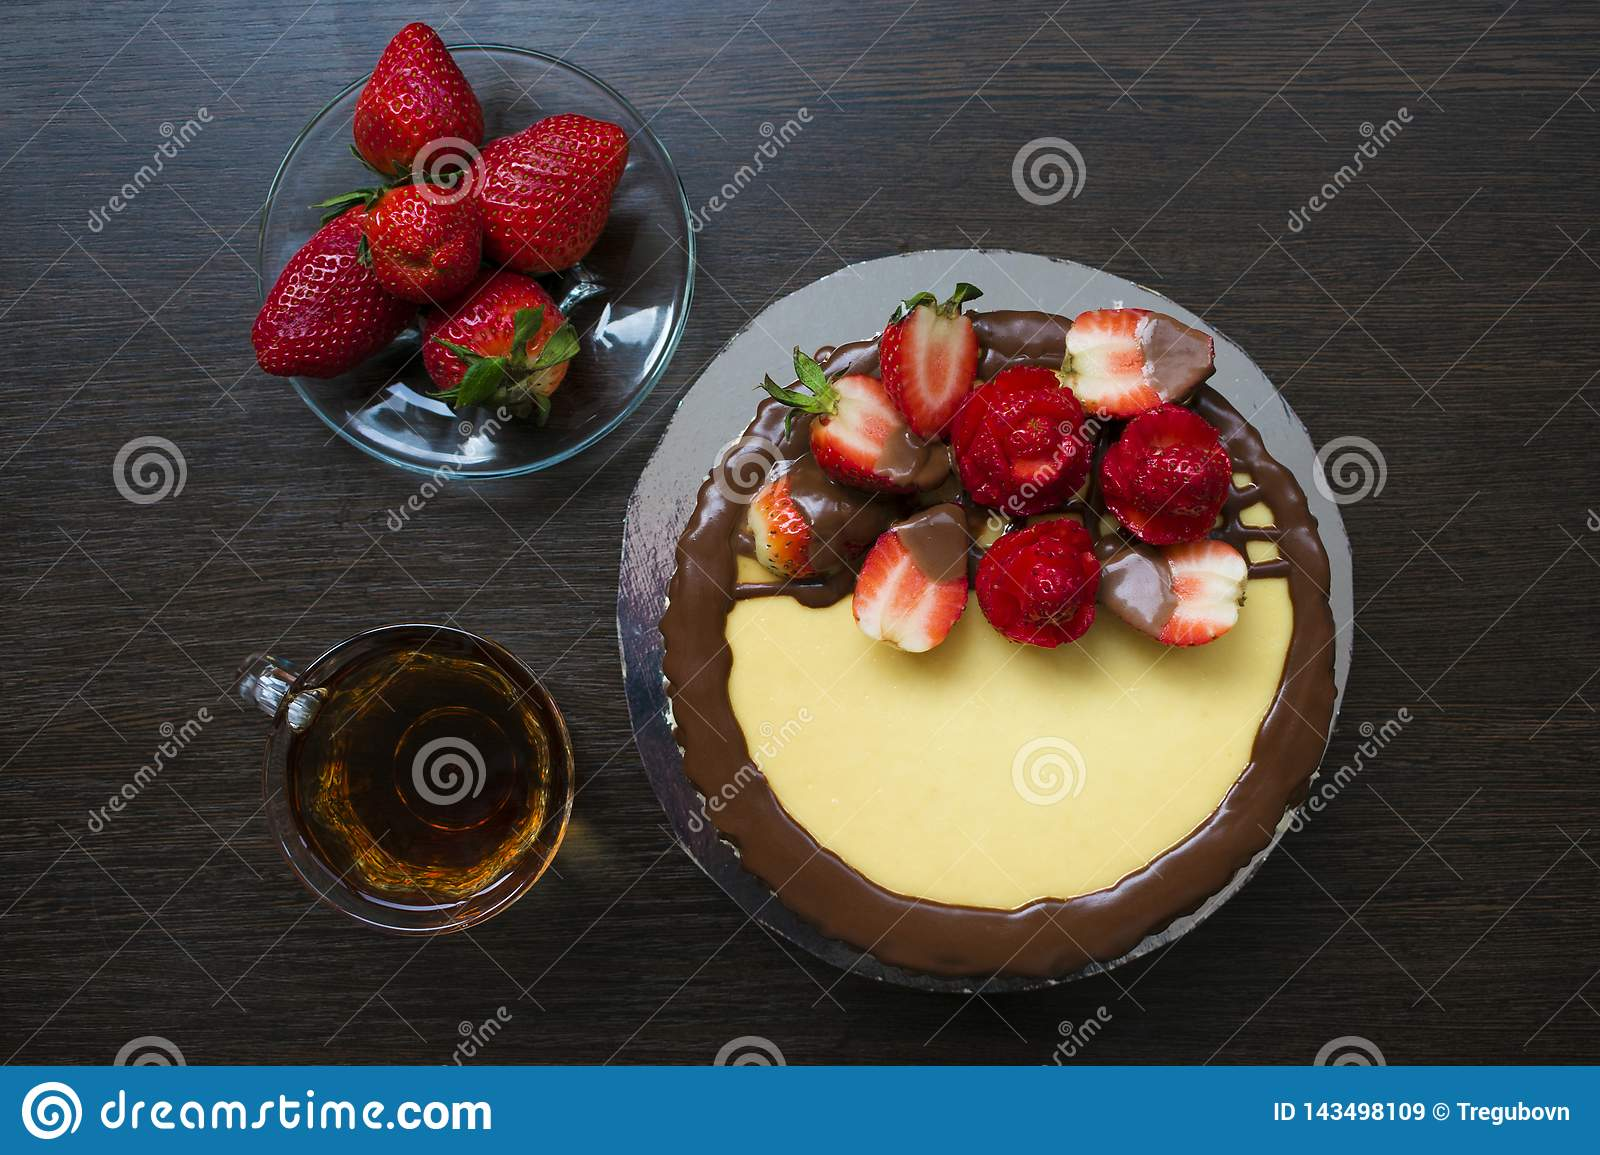 Strawberries on a saucer on the background of a wooden standDecorated strawberry cheesecake with a cup of tea and strawberries